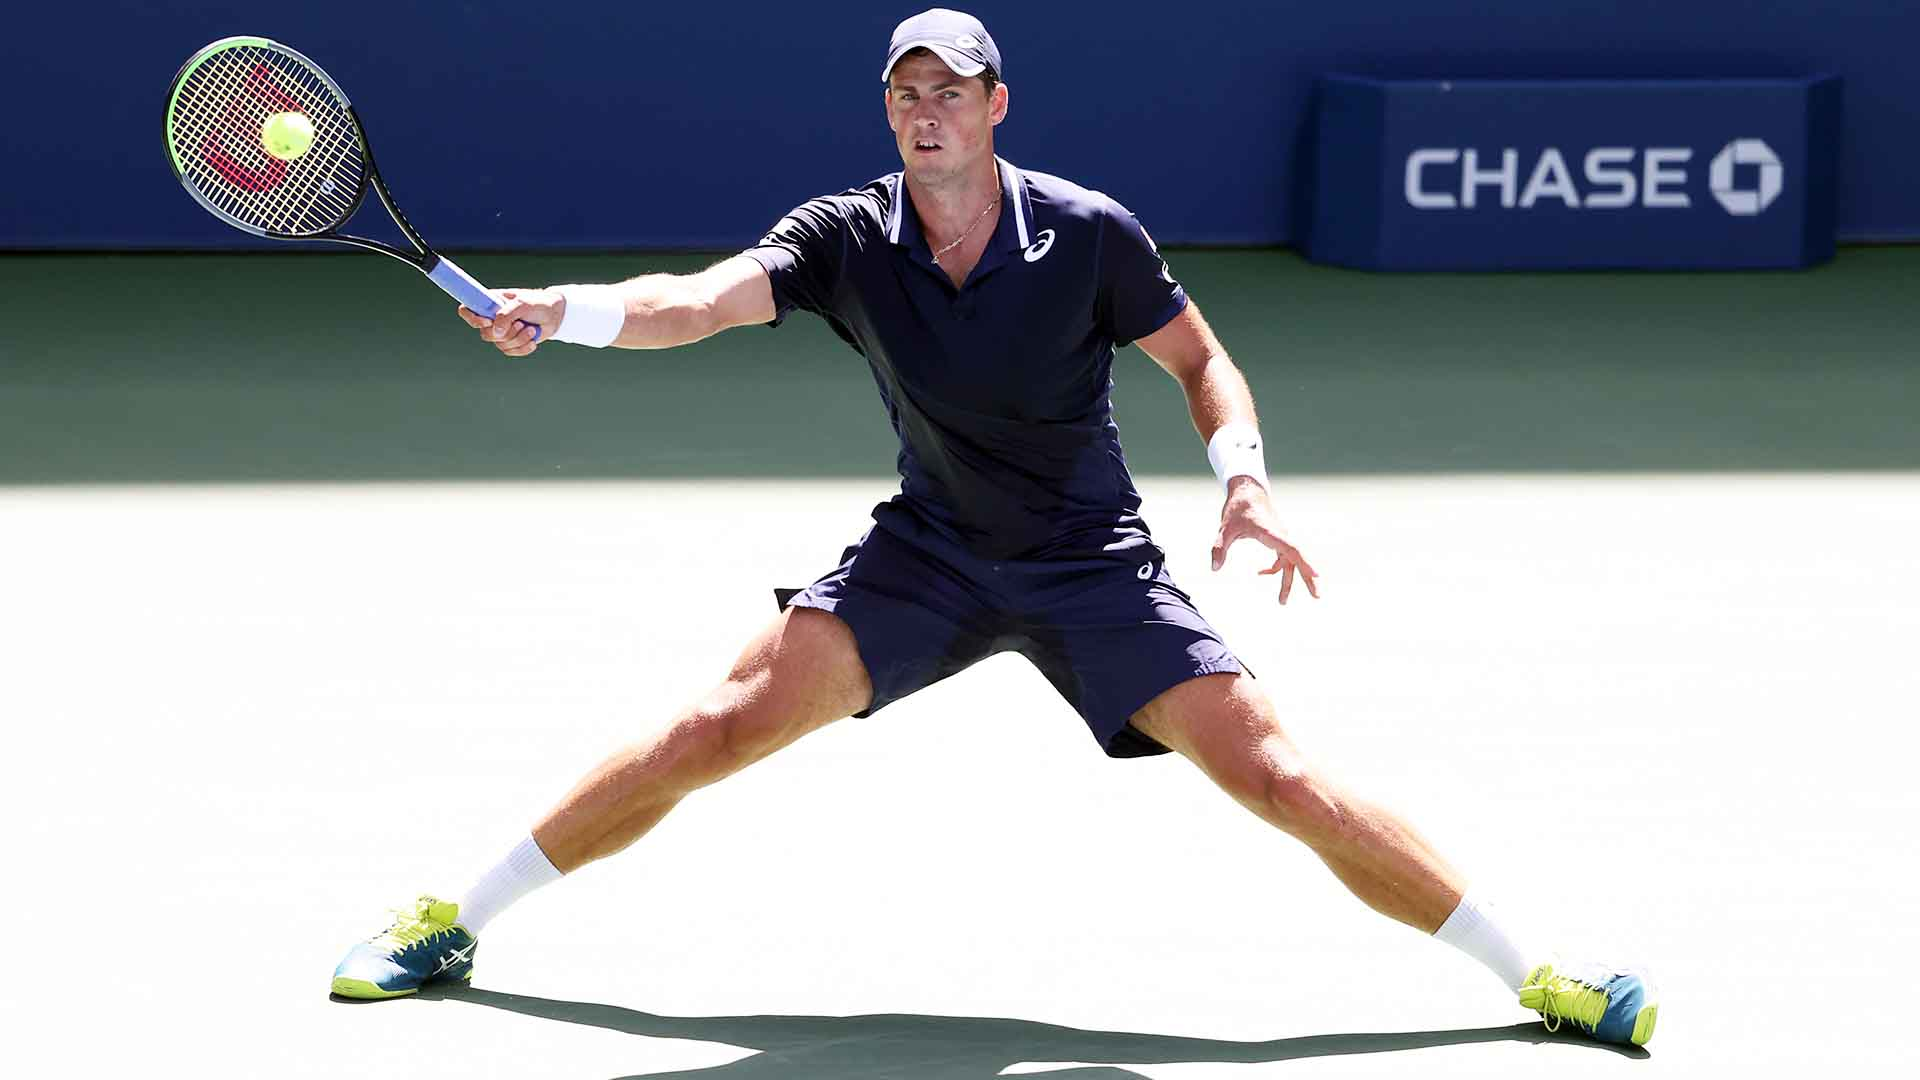 <a href='/en/players/vasek-pospisil/pd07/overview'>Vasek Pospisil</a> is through to the <a href='/en/tournaments/us-open/560/overview'>US Open</a> fourth round for the first time.